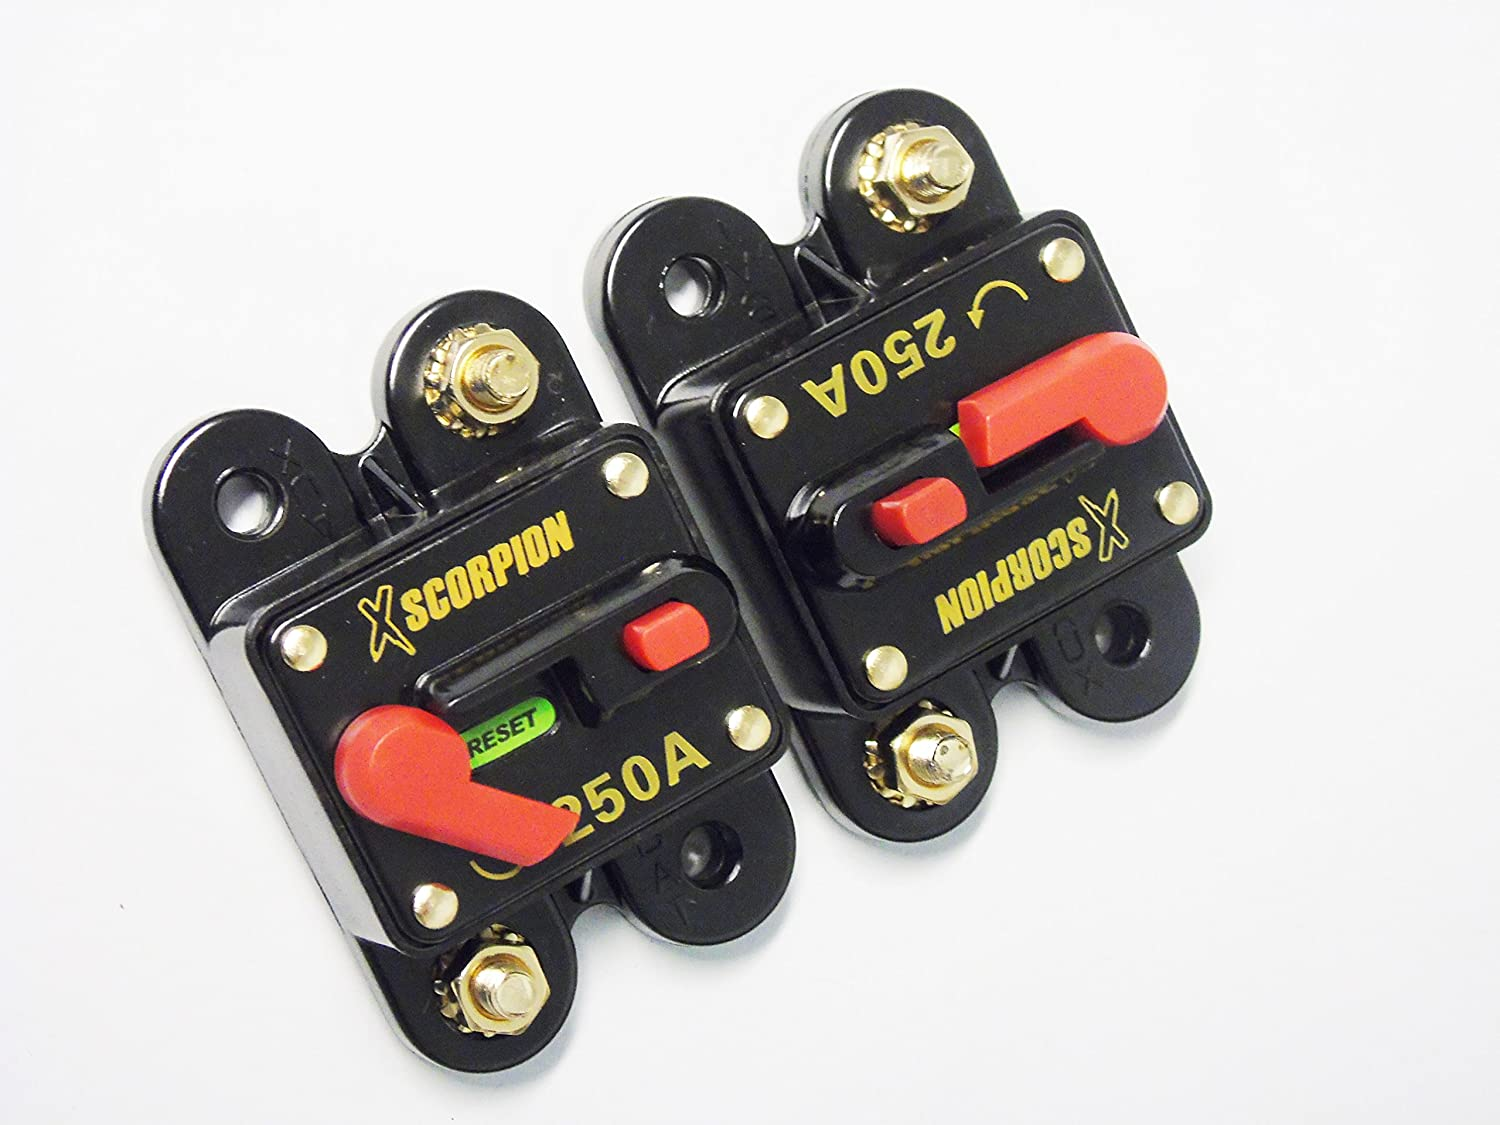 12 Volt Wire Gauge Vs Amps 12 Volt Wiring Gauge Requirements At